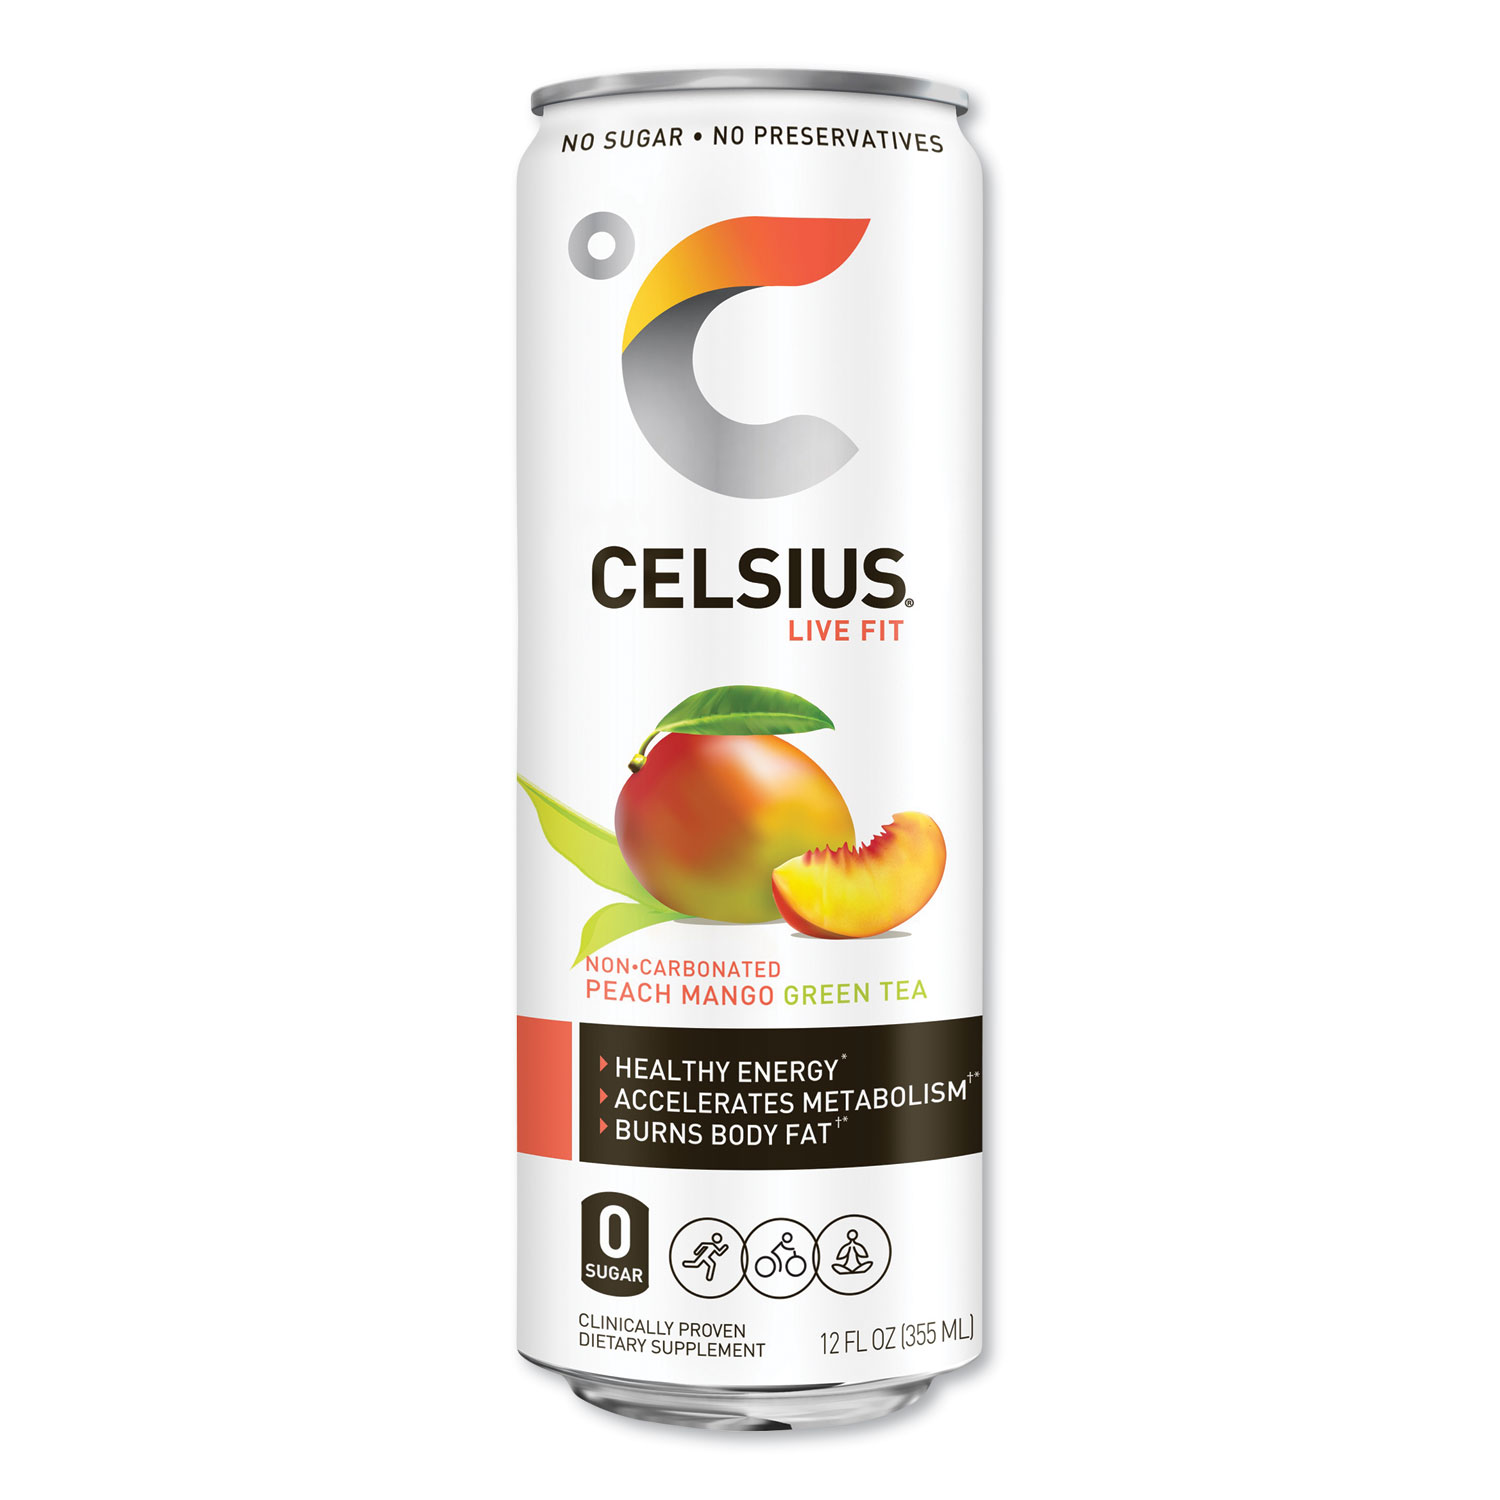 Celsius® Live Fit Fitness Drink, Peach Mango Green Tea, 12 oz Can, 12/Carton